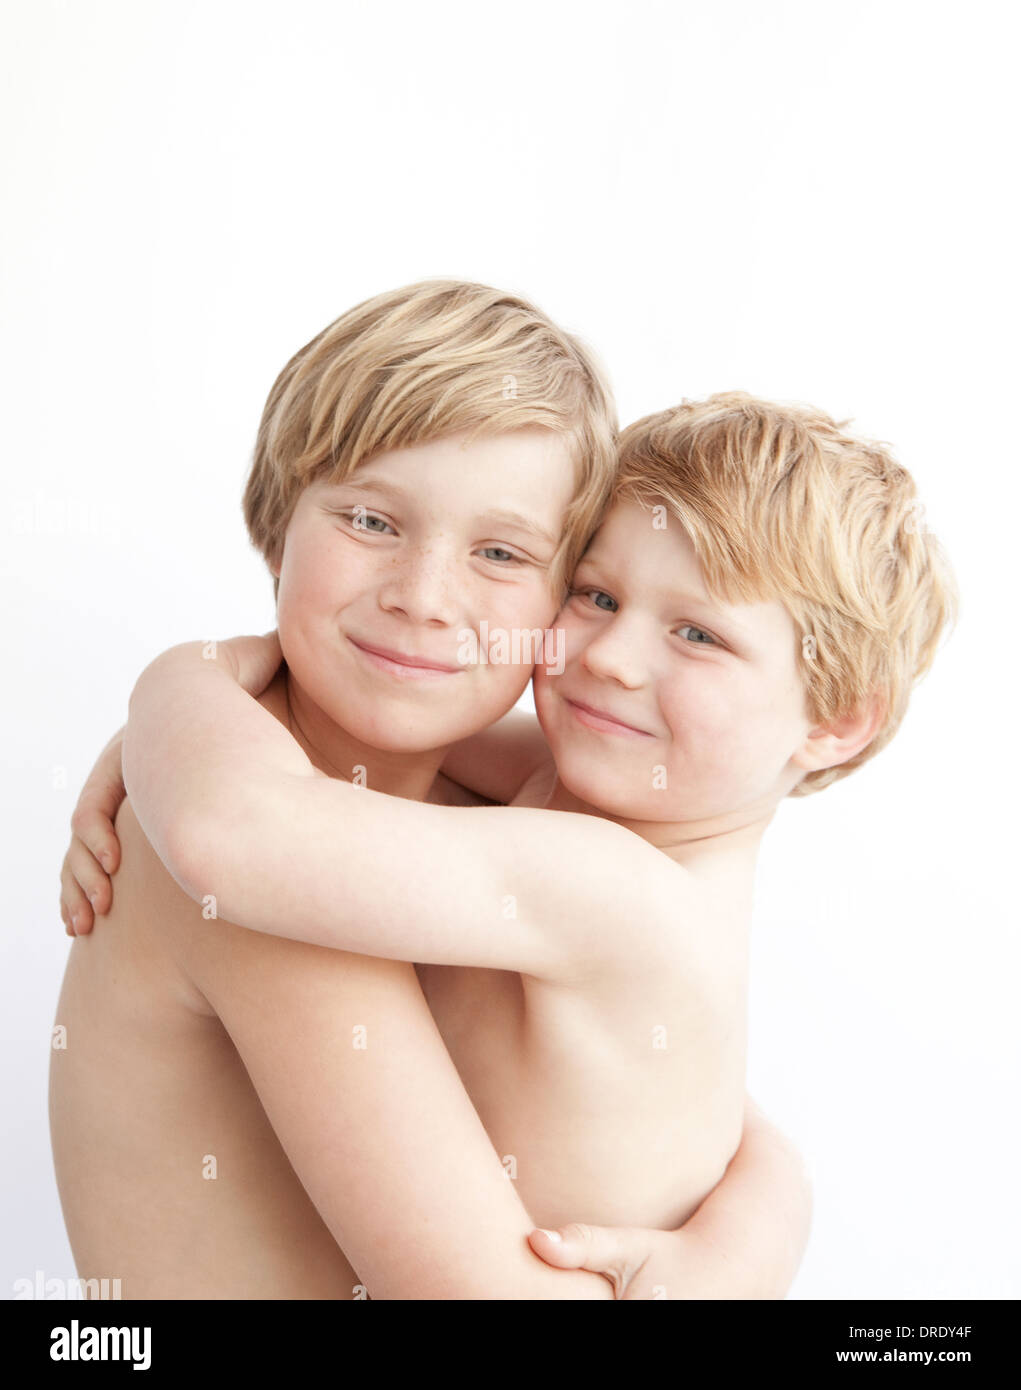 Brothers hugging - Stock Image